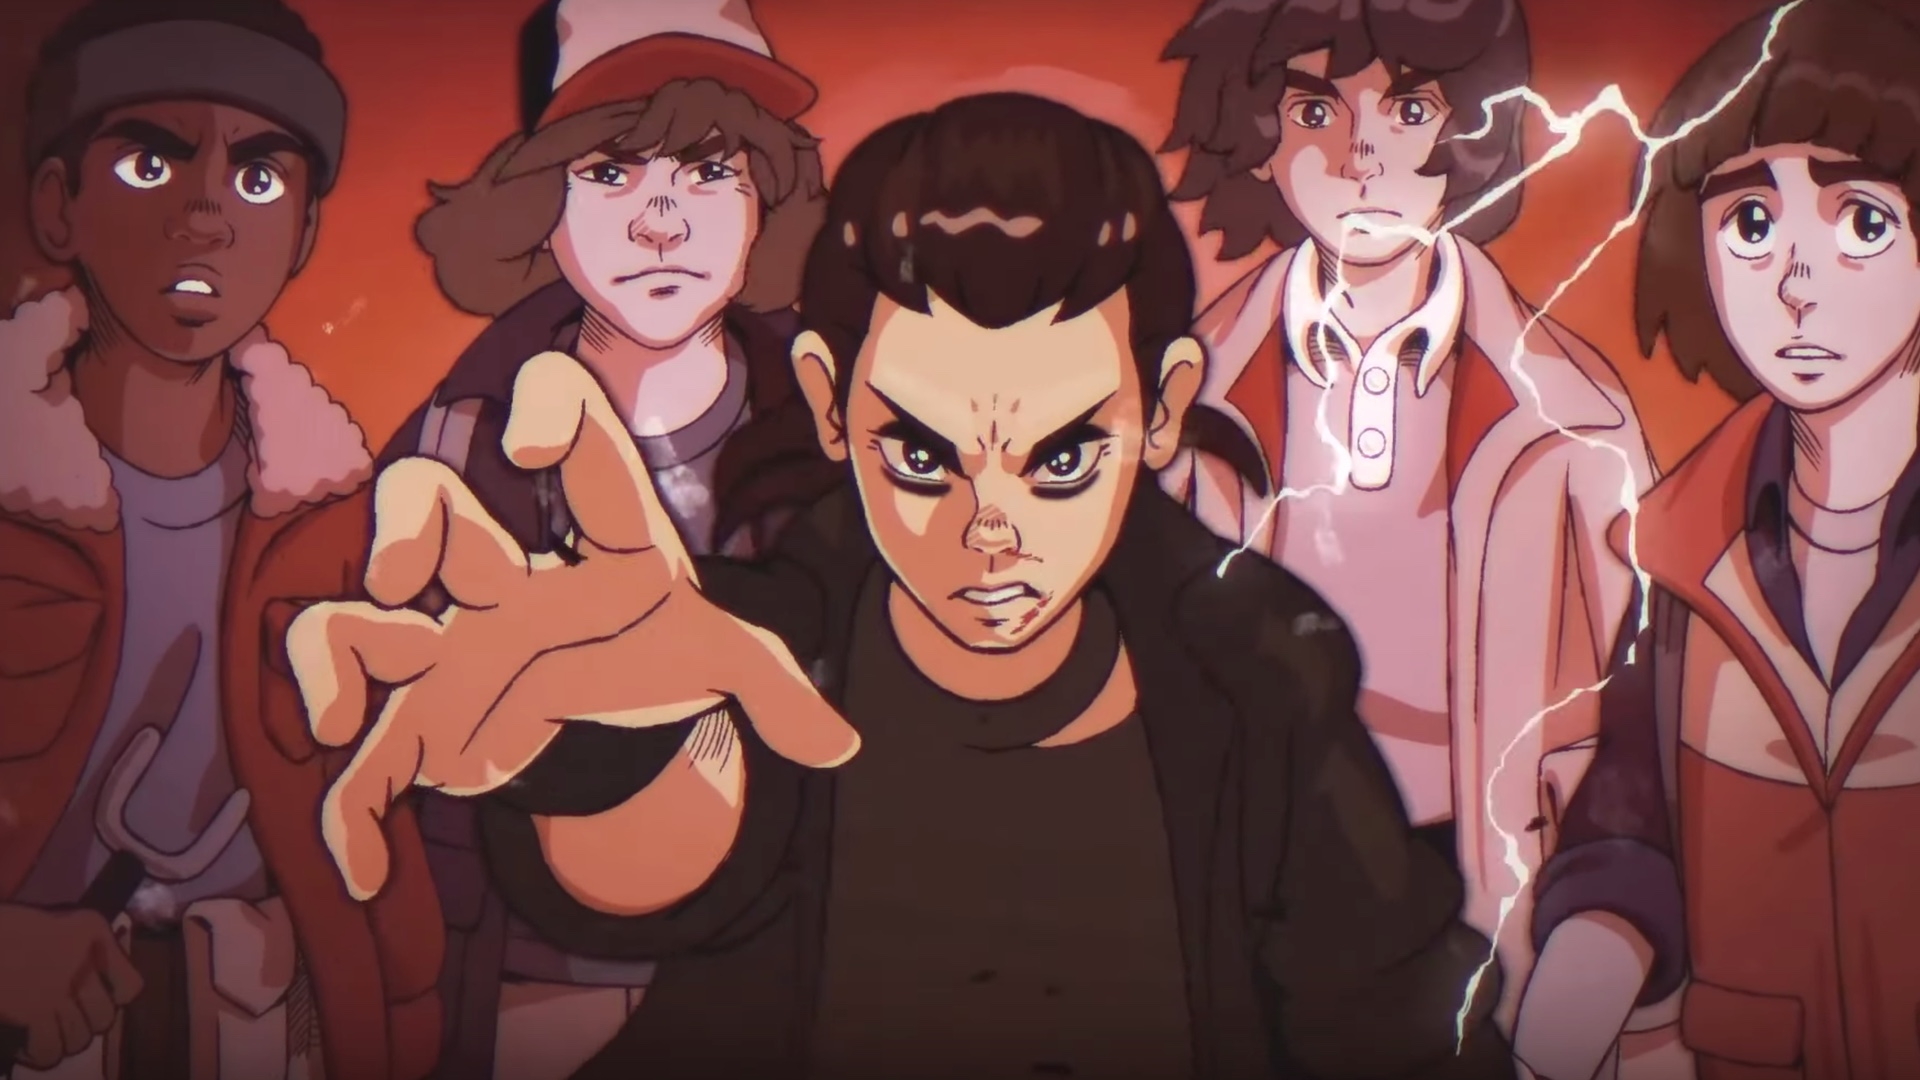 watch-stranger-things-awesomely-reimagined-as-an-80s-style-anime-social.jpg